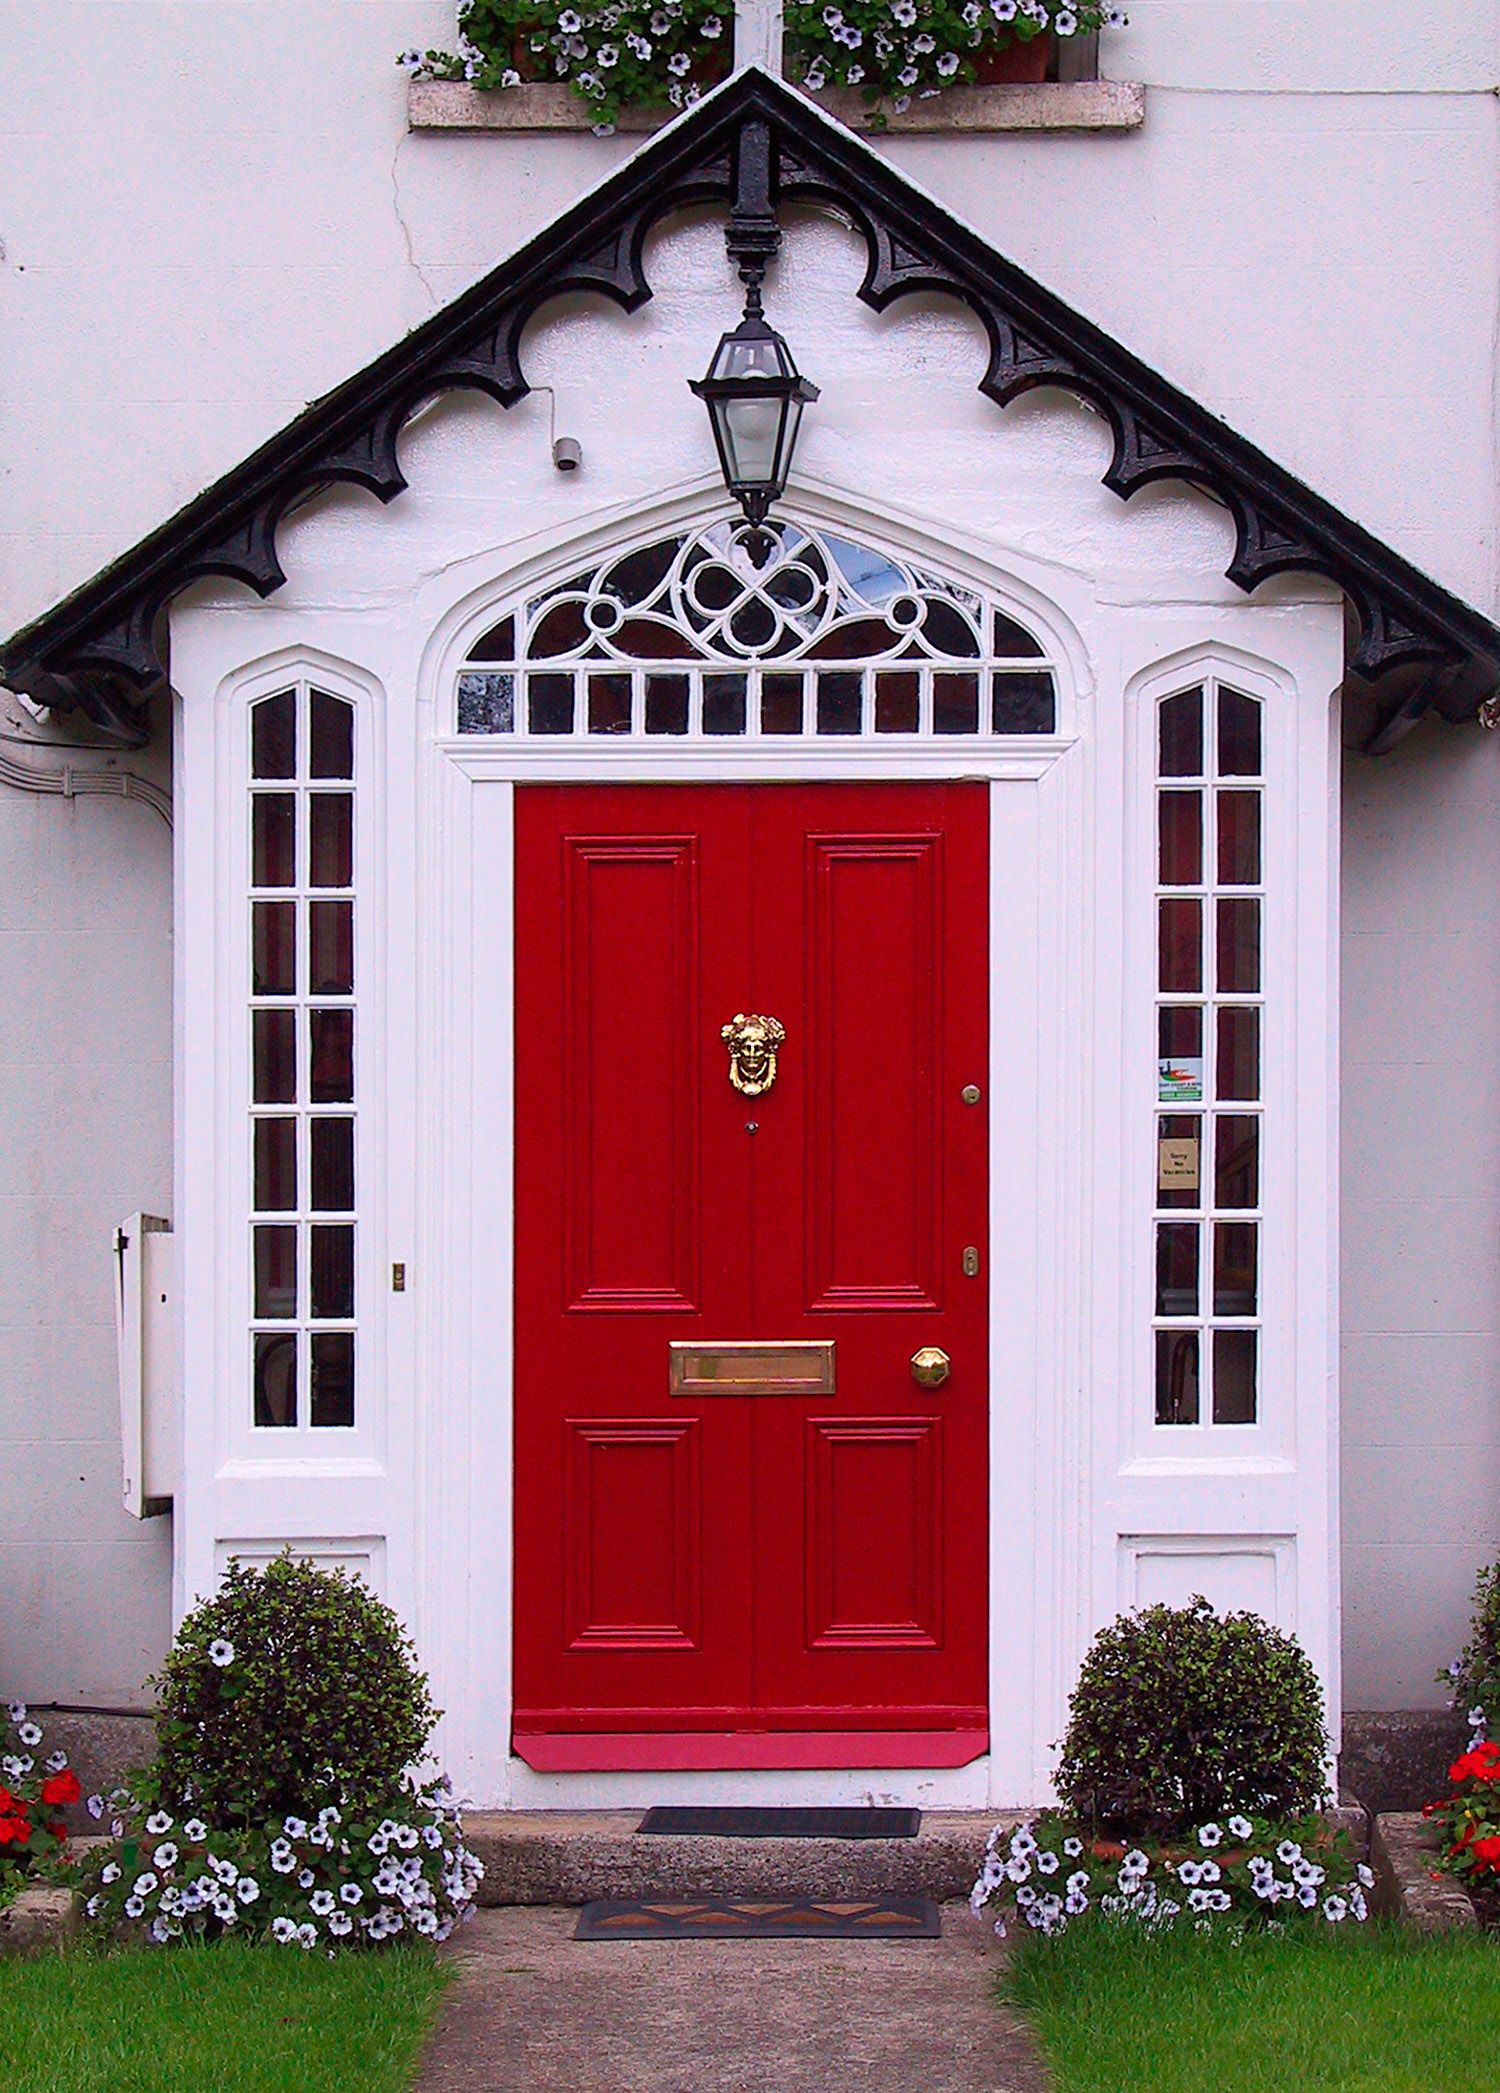 What Is The Meaning Of A Red Door On A House Painted Front Doors Red Front Door Front Door Design